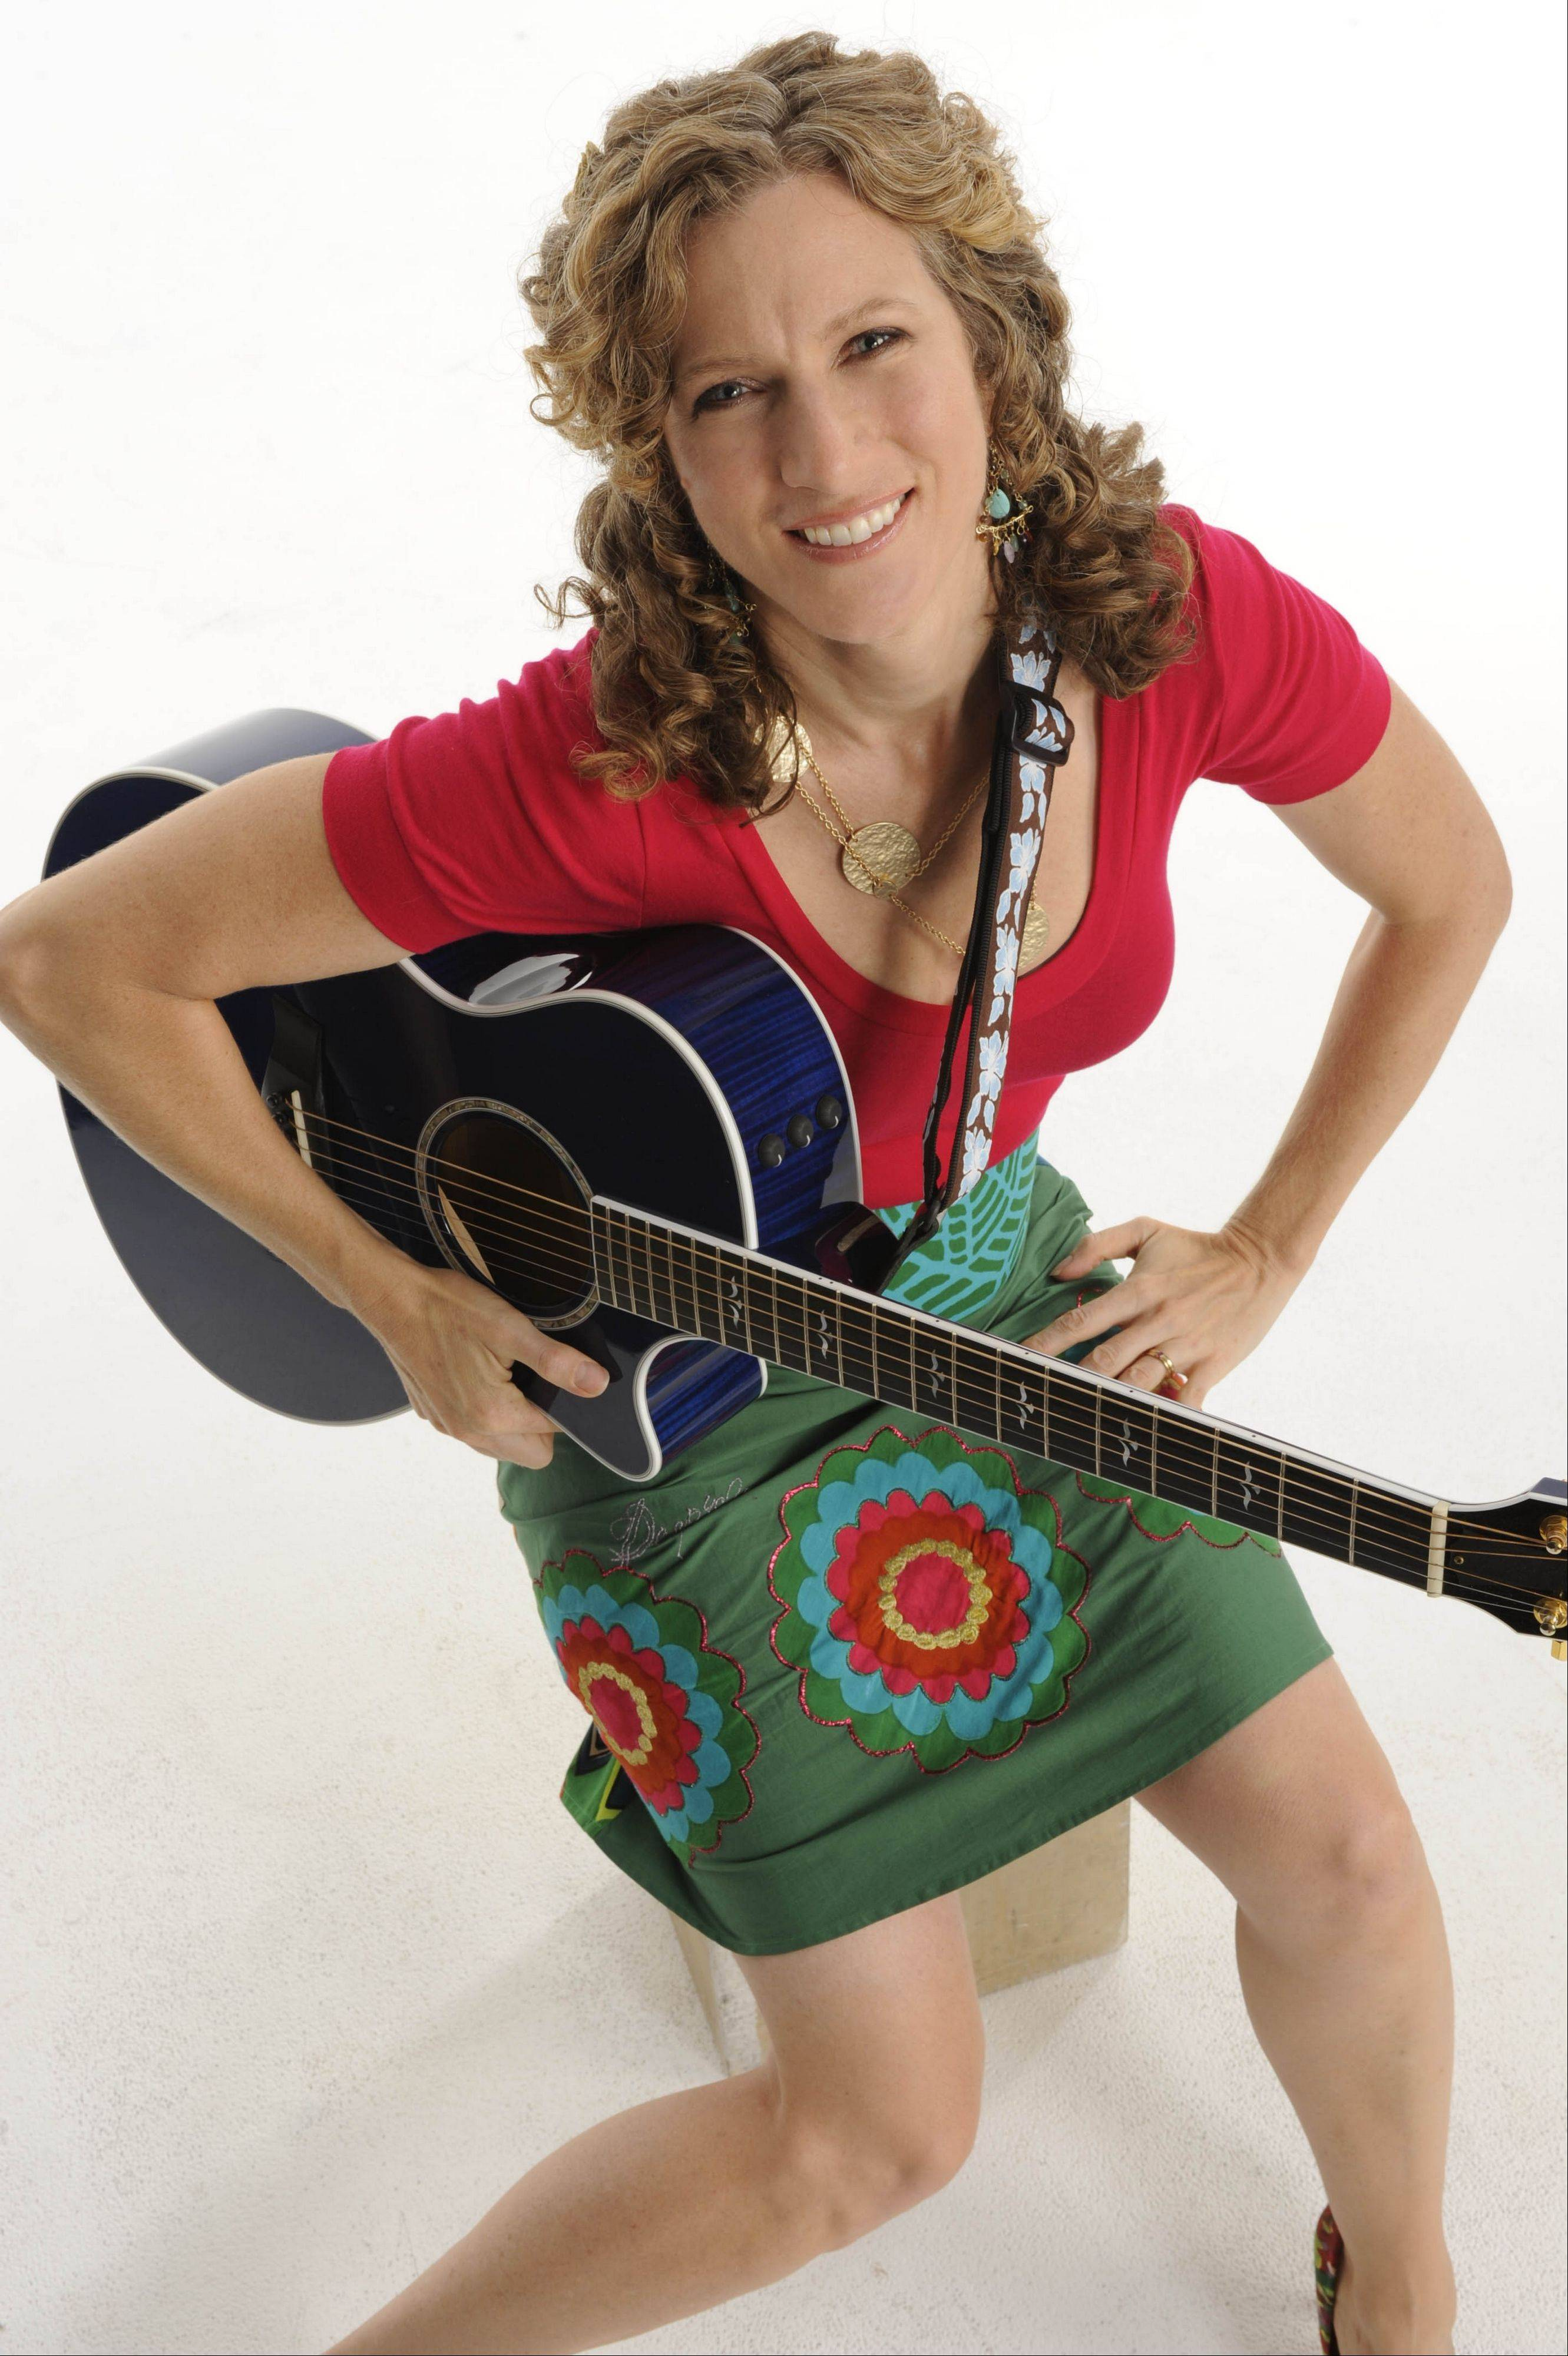 Best-selling children's recording artist Laurie Berkner is set to headline Ravinia on Sunday.